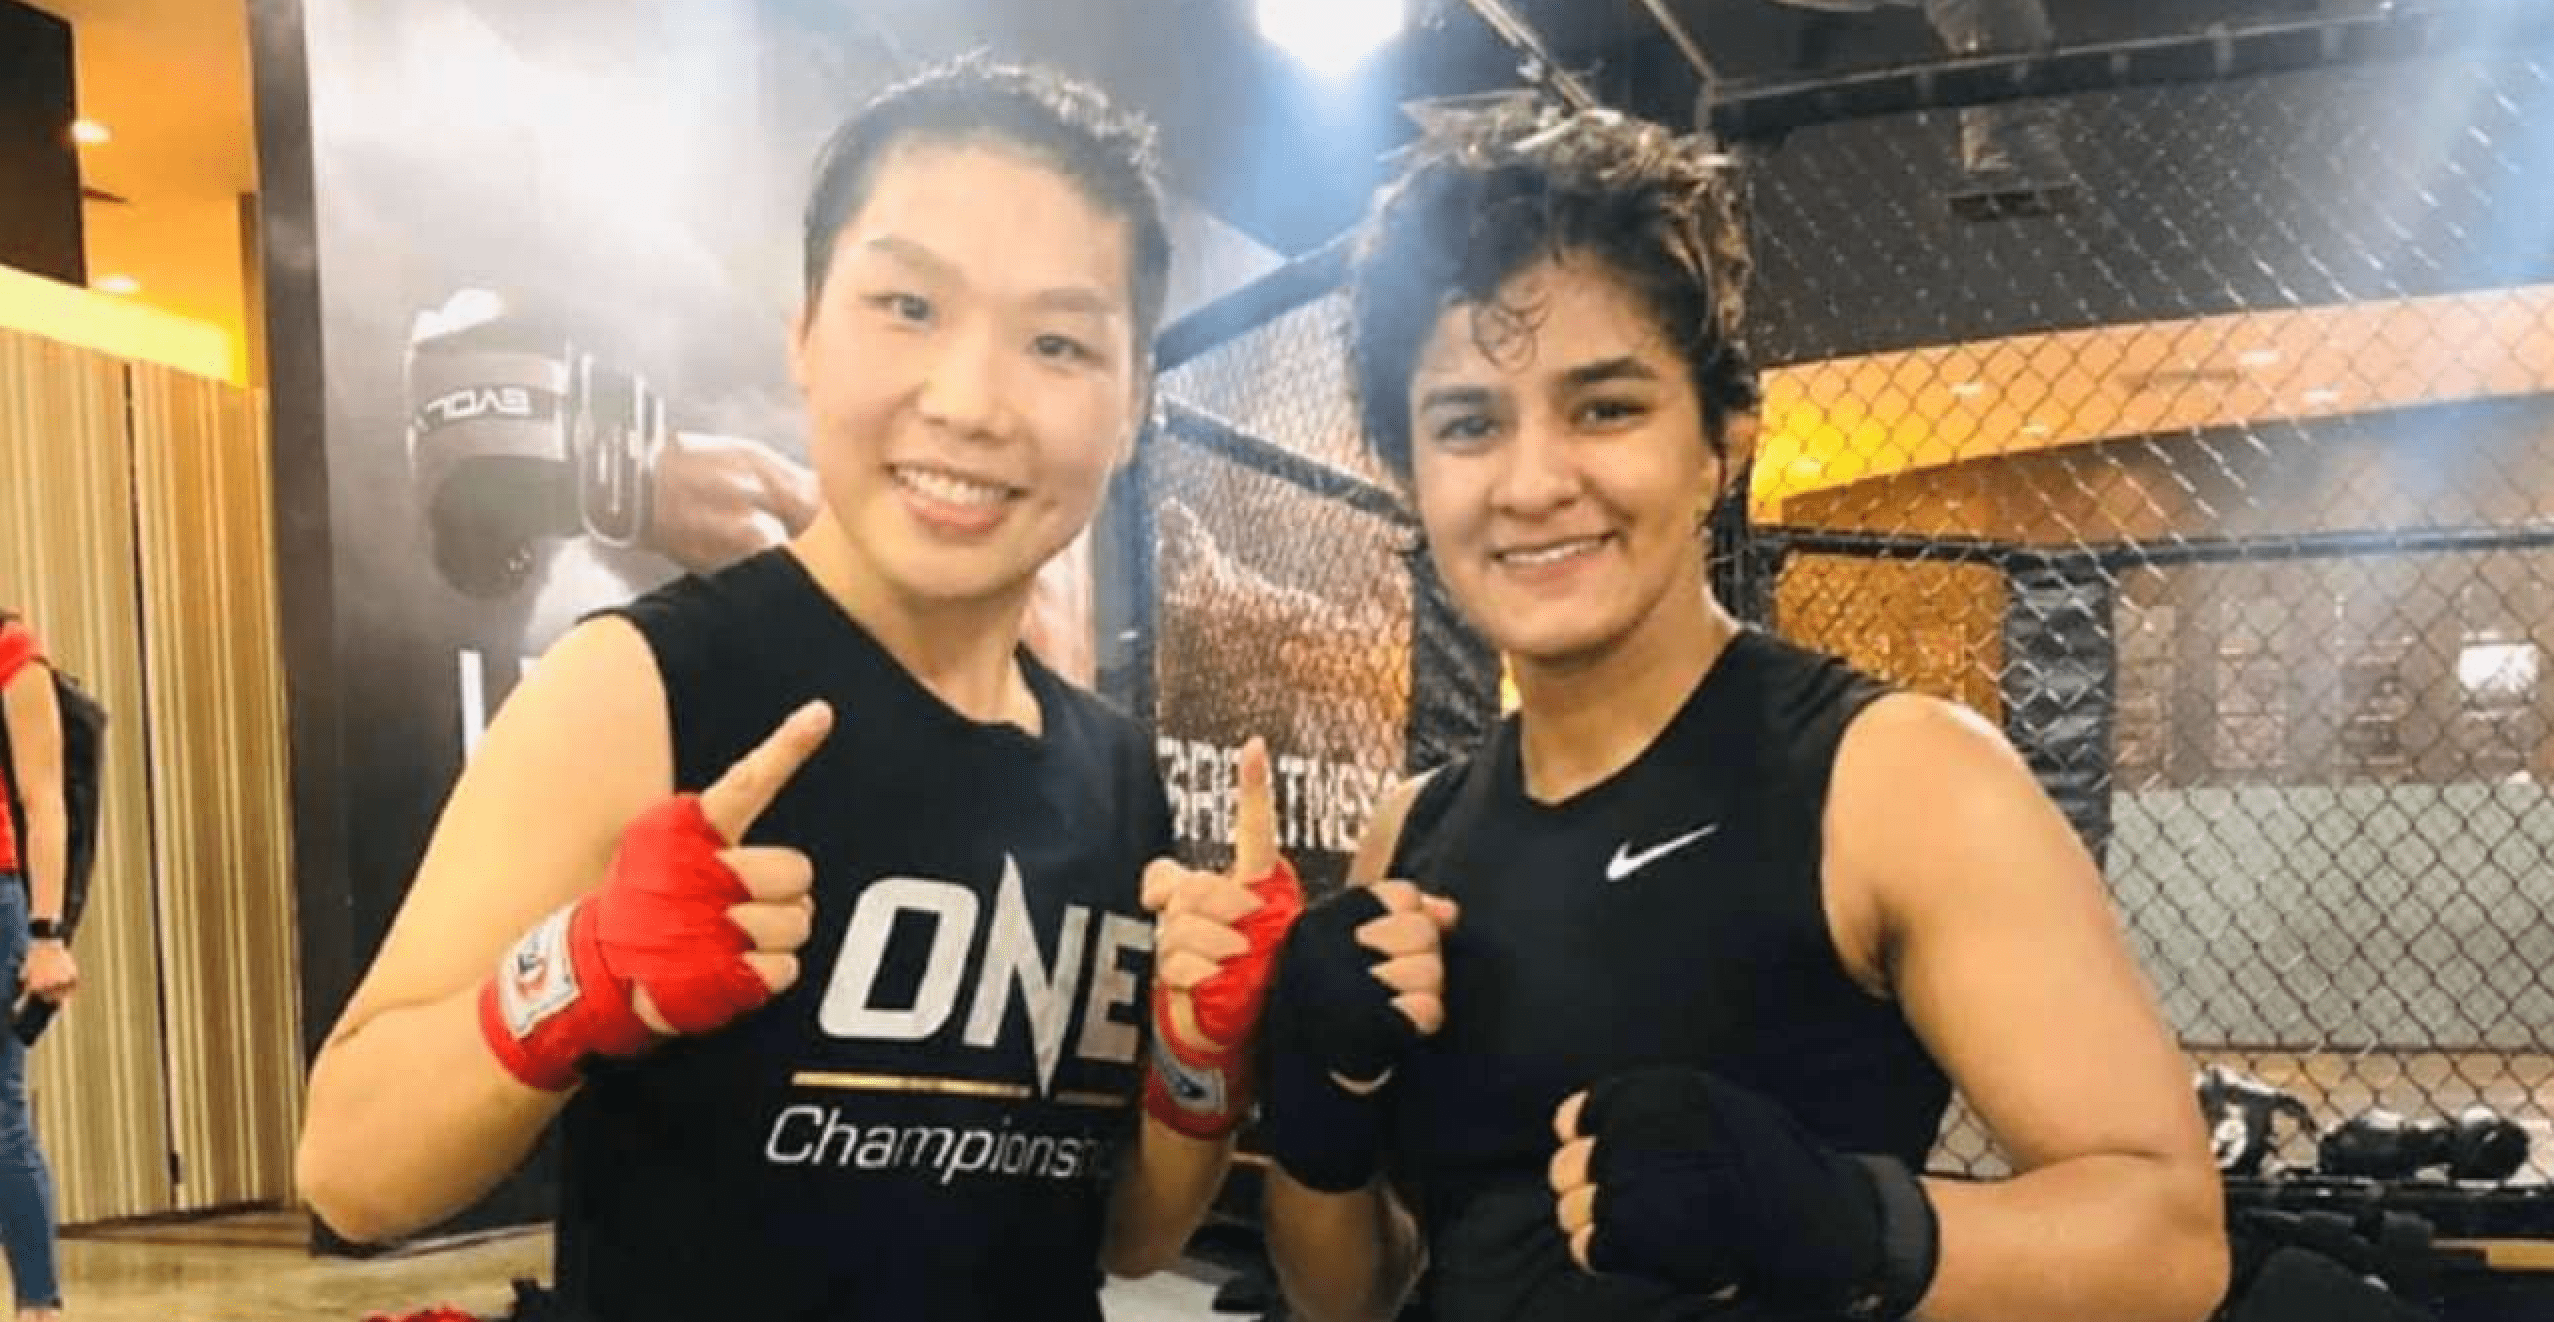 Ritu Phogat Has One Aim, Become India's First Female MMA Champion